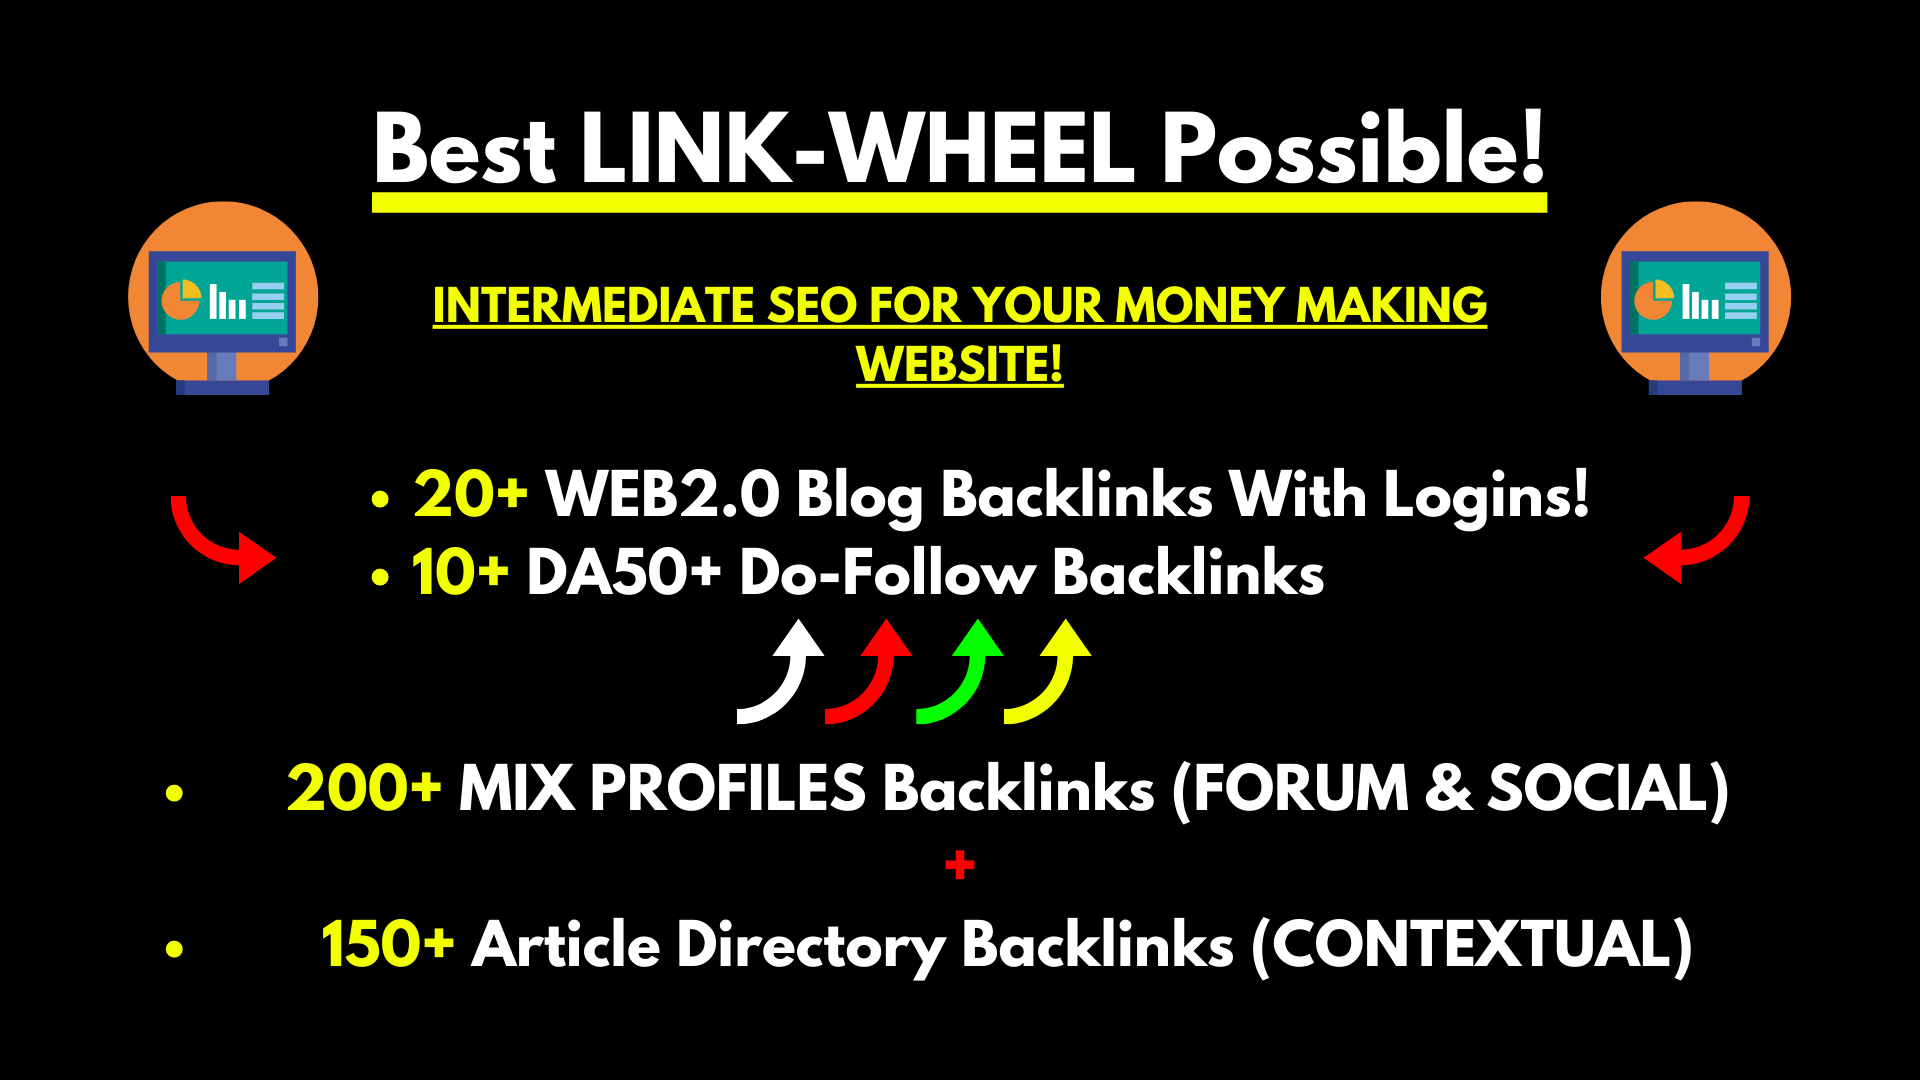 Best Link Wheel For The Single Post Rankings - 380+ Backlinks